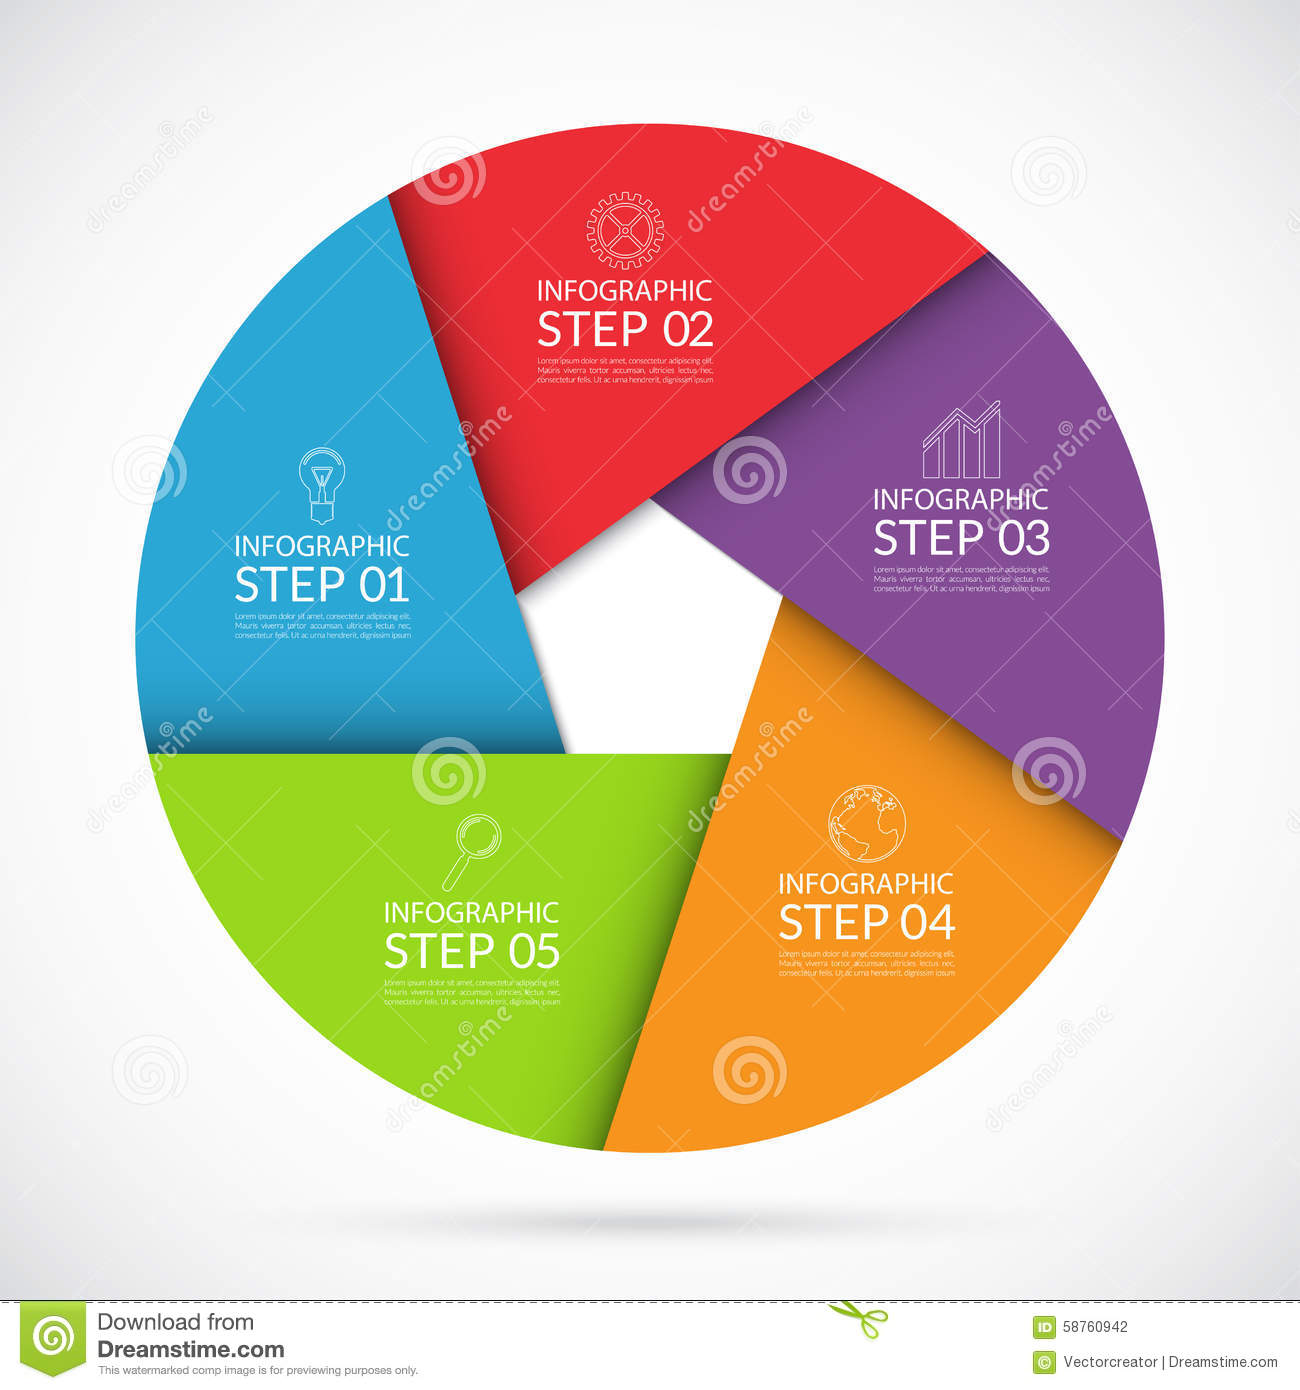 5 Steps Infographic Circle Template In Material Style